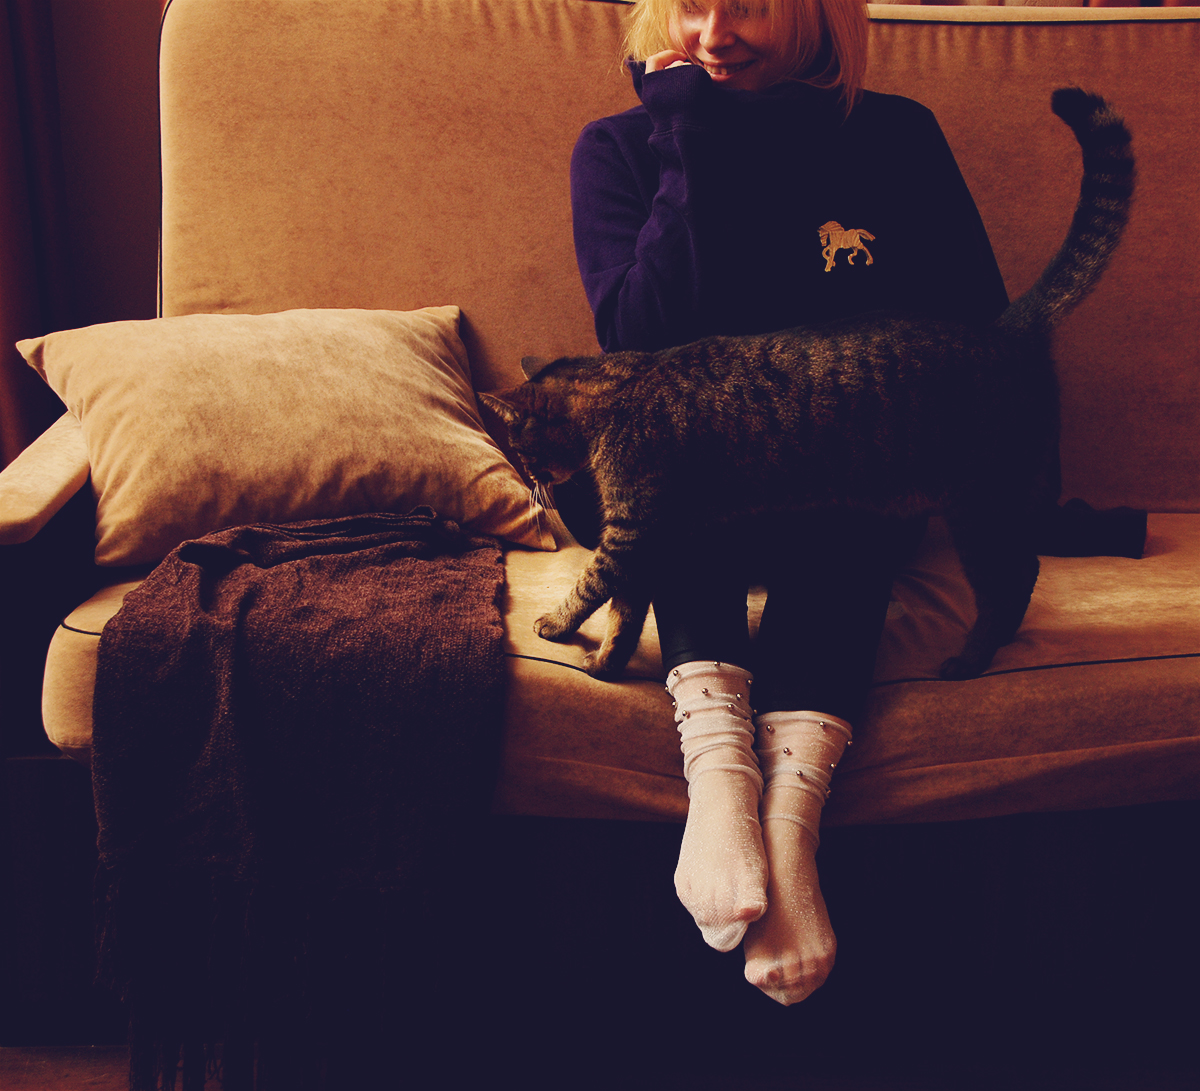 girl on couch with cat, trendy socks, black tulle socks with star pattern, stylish big horse brooch, leggings, hoodie, comfy, winter, cute, cat